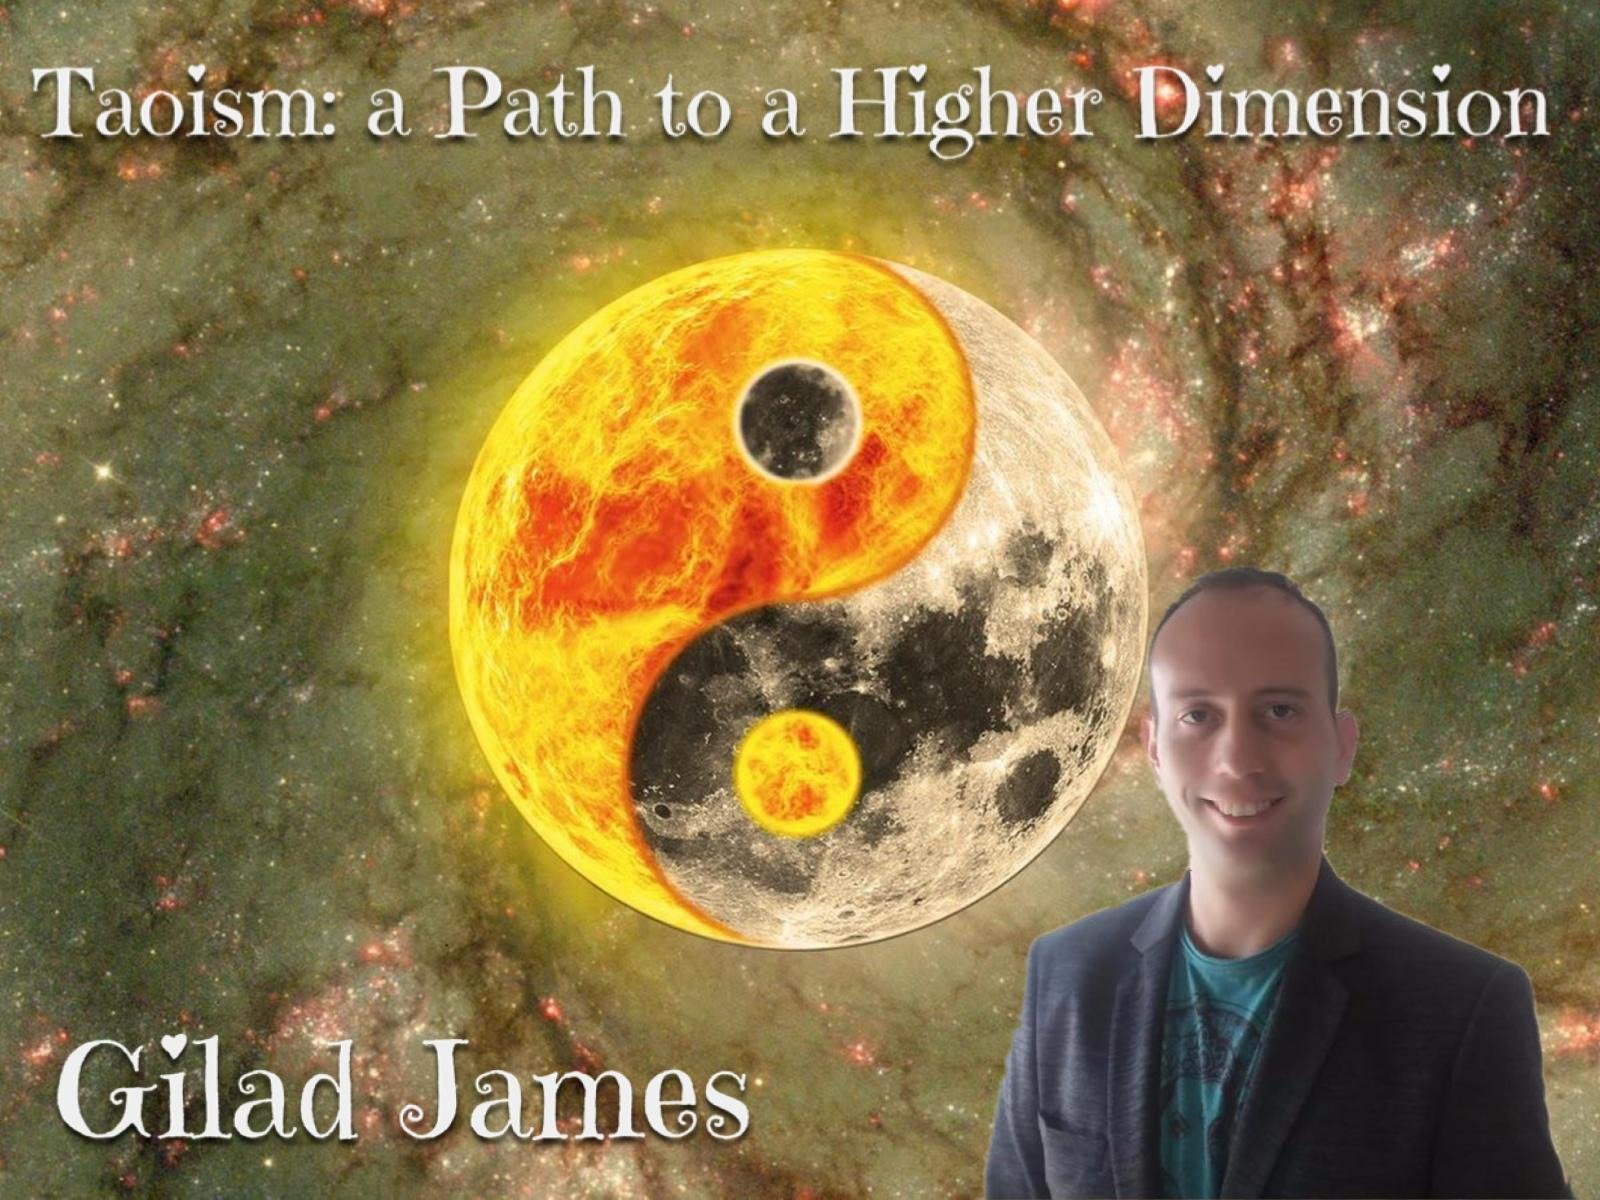 Taoism: a path to a higher dimension - Season 1